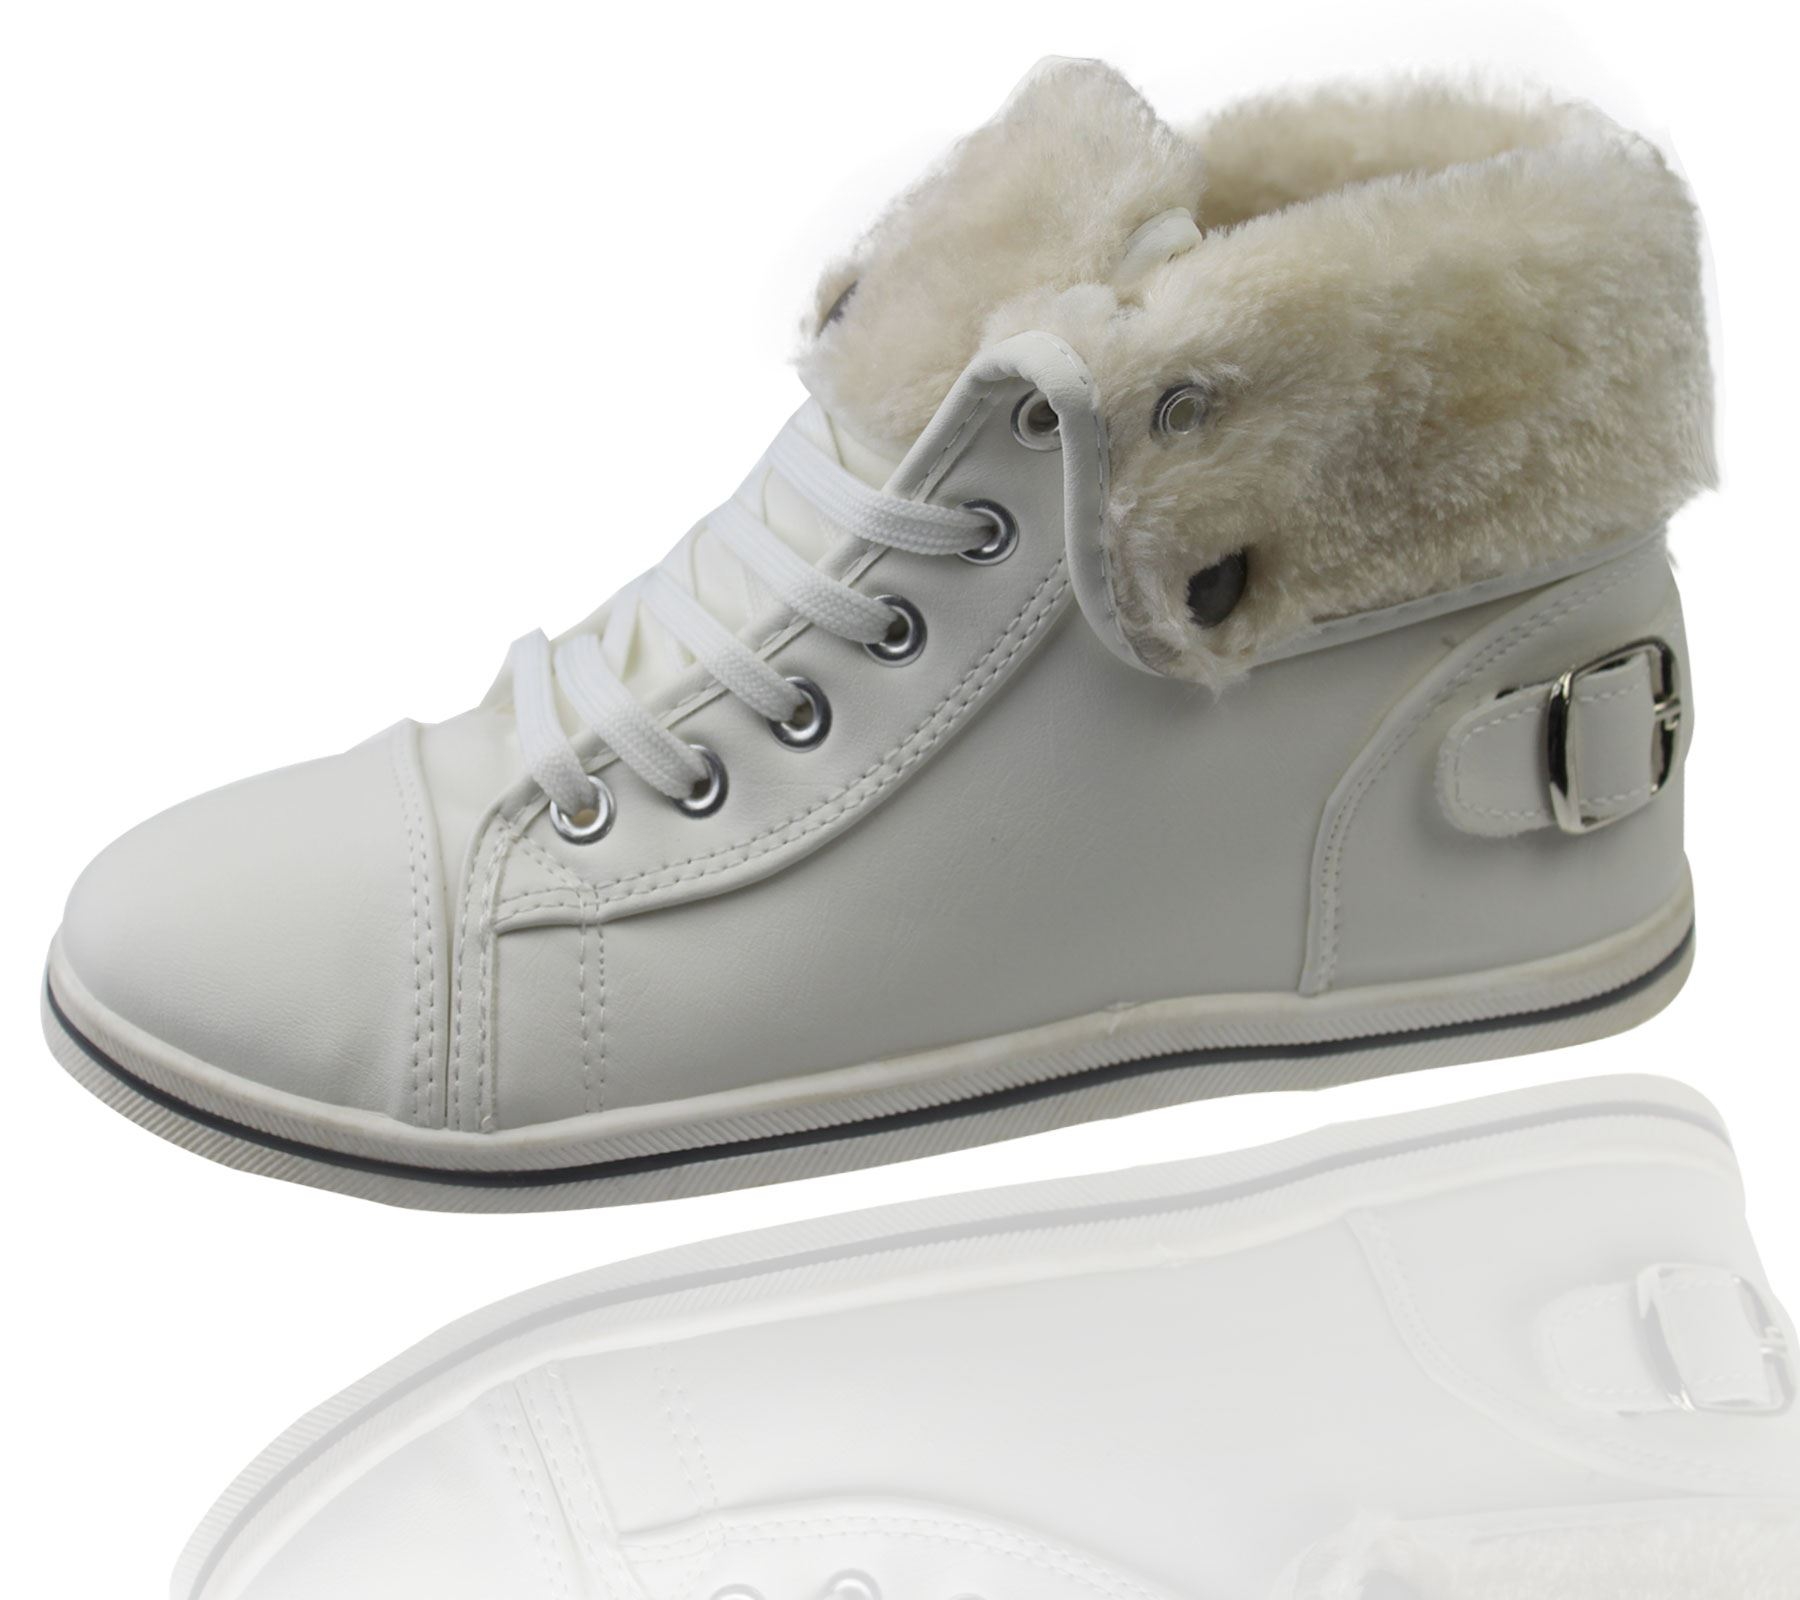 Girls-Boots-Womens-Warm-Lined-High-Top-Ankle-Trainer-Ladies-Winter-Shoes-Size miniatura 68